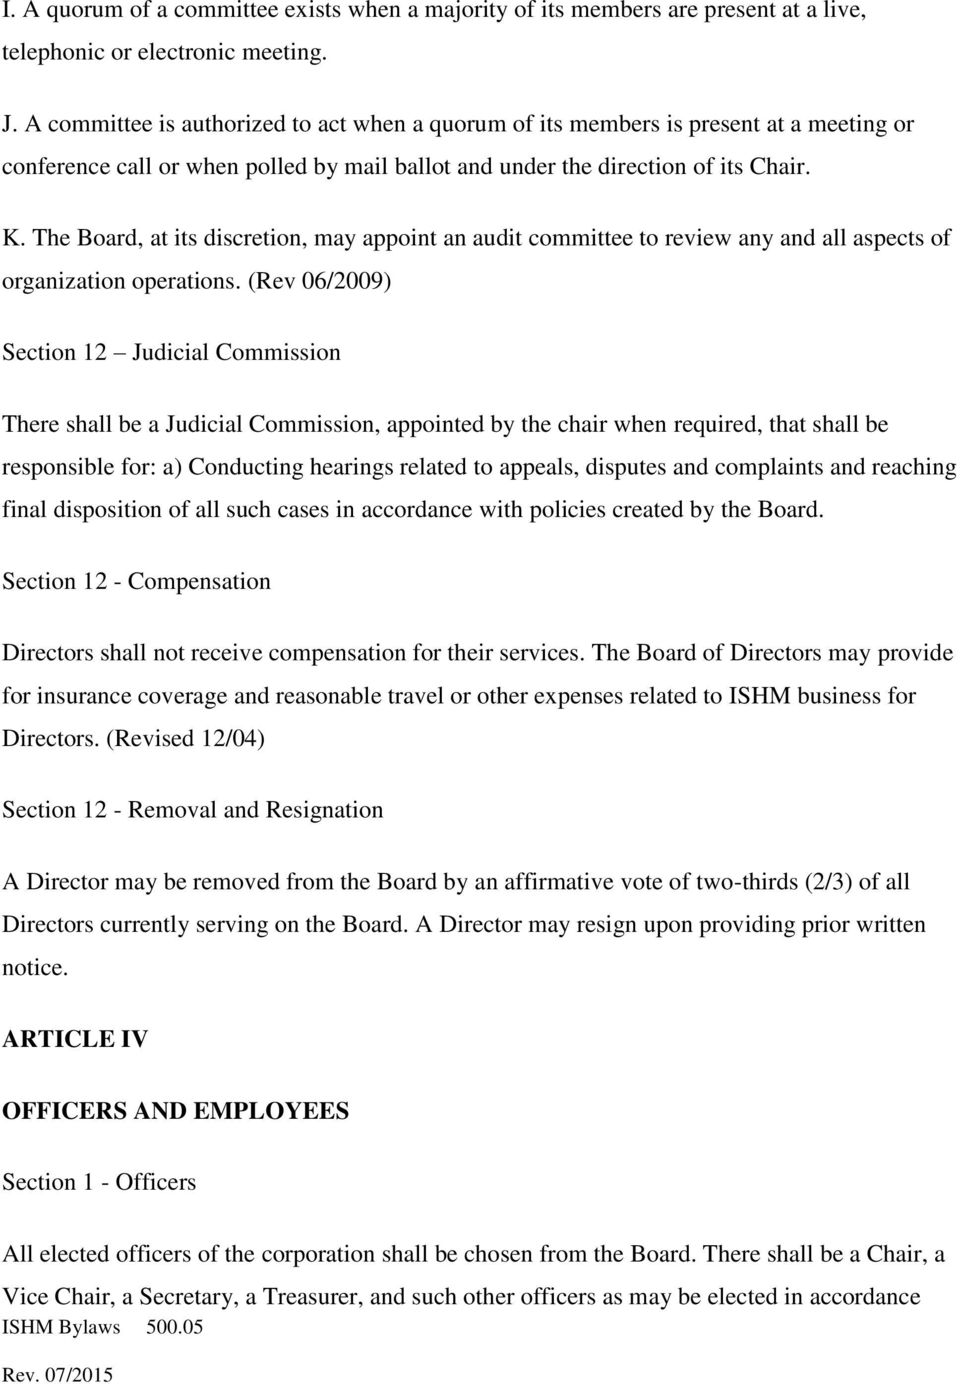 The Board, at its discretion, may appoint an audit committee to review any and all aspects of organization operations.